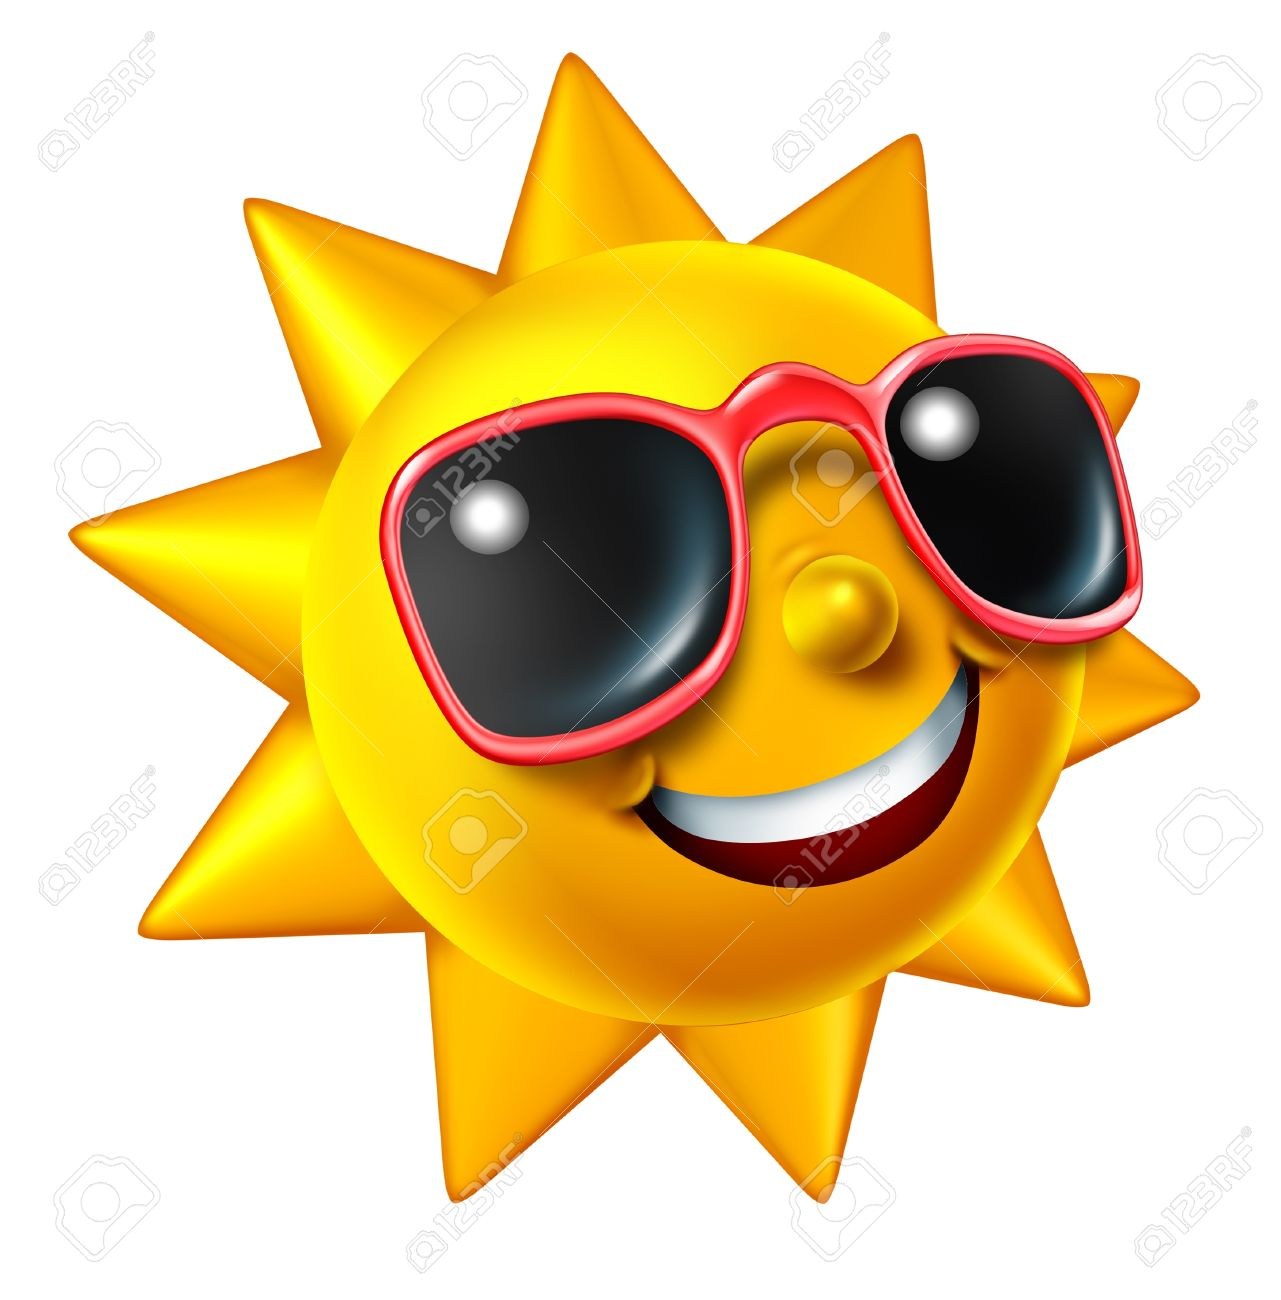 Smiling Summer Sun Character With Sunglasses As A Happy Ball Stock Photo Picture And Royalty Free Image Image 13838358